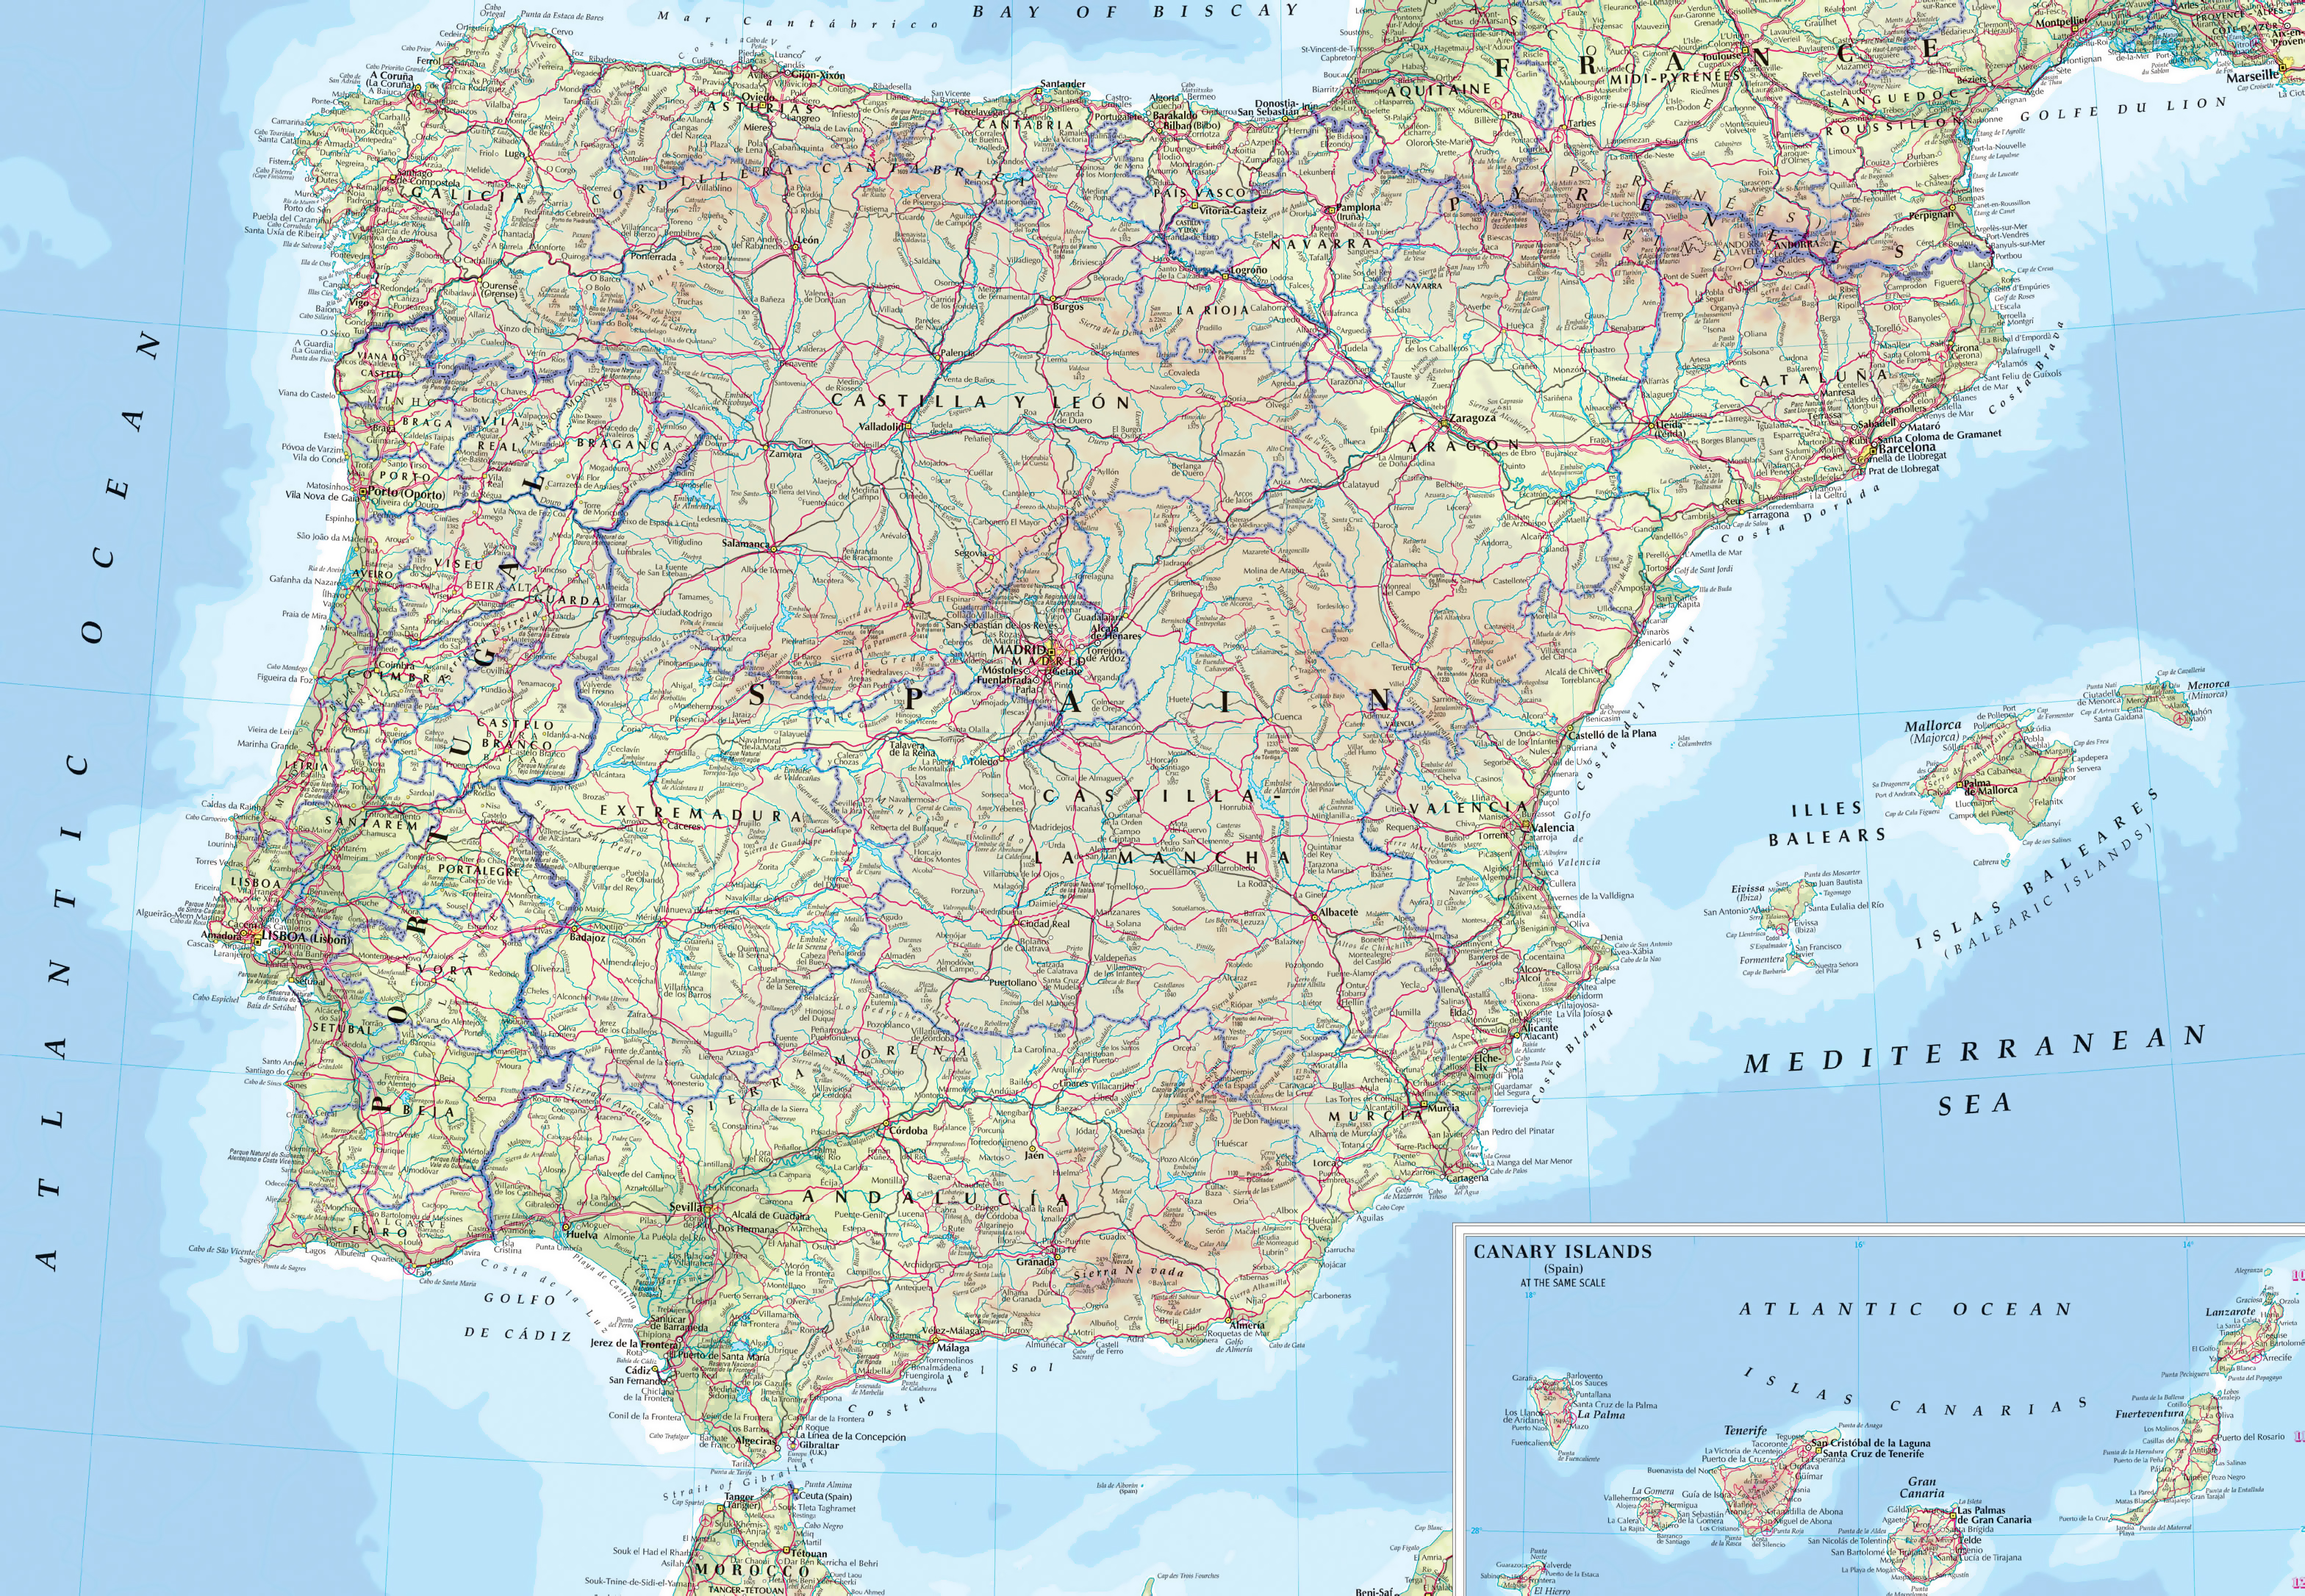 Map Of Spain And Europe.Large Road Map Of Spain And Portugal With Cities And Airports